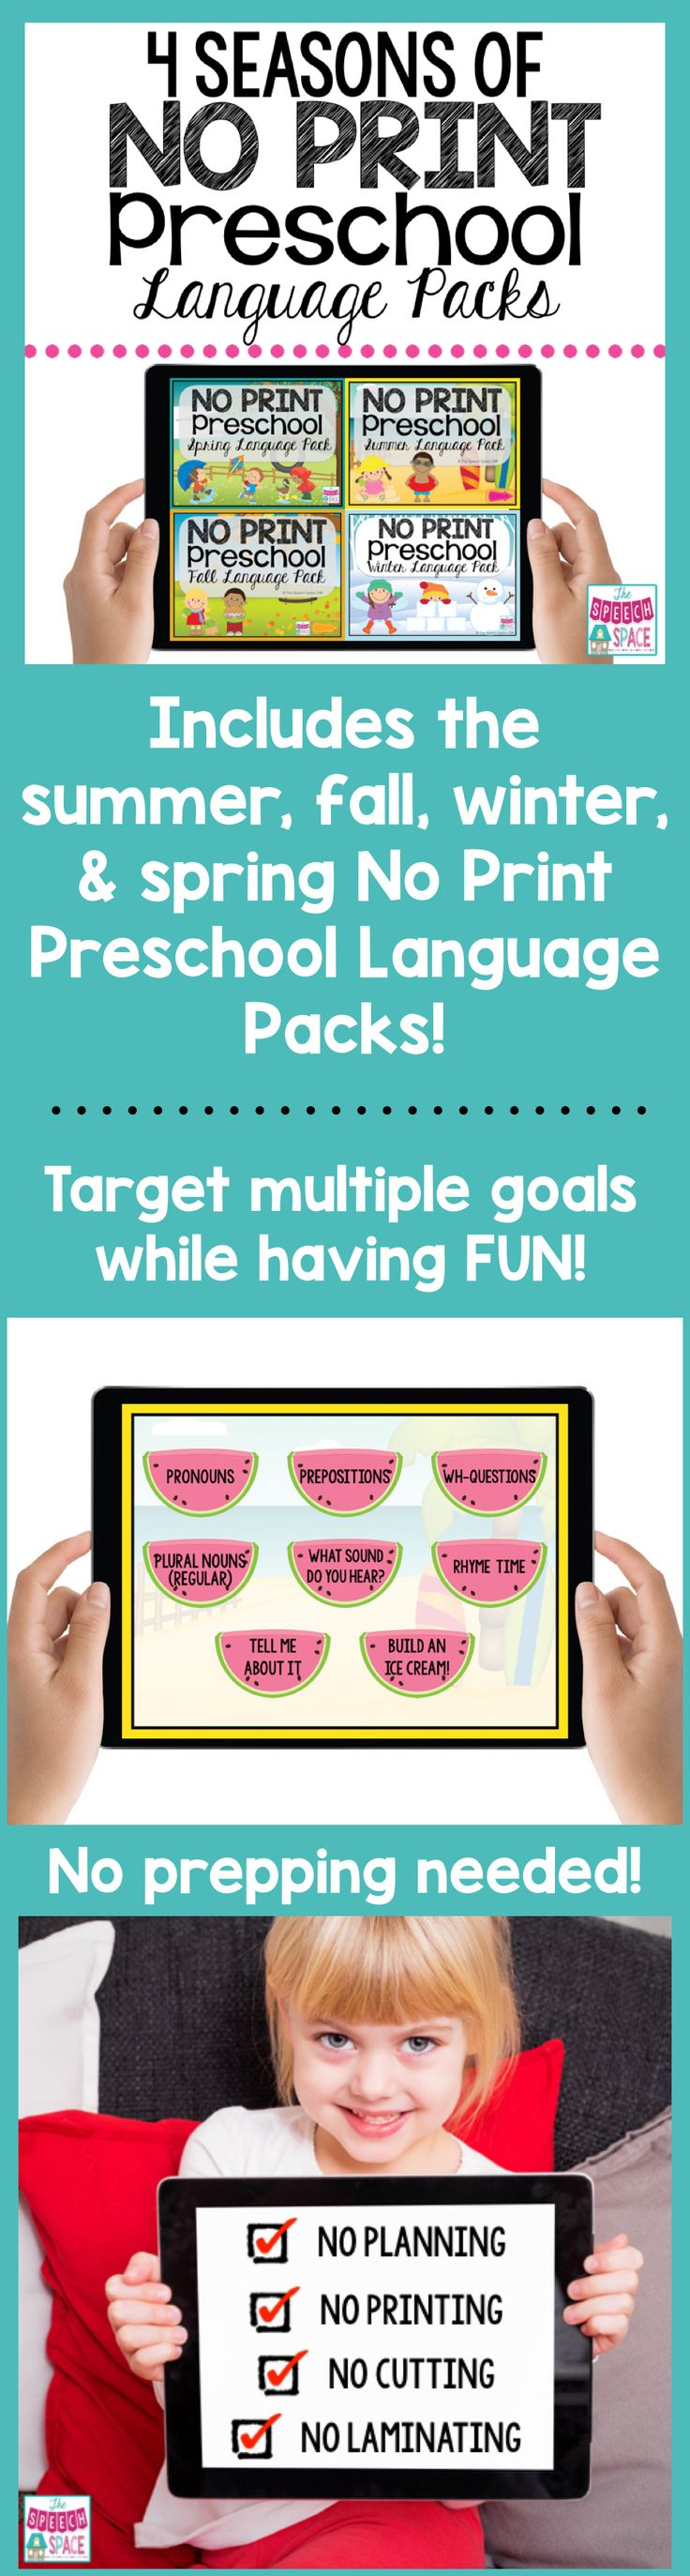 74 best Homeschooling images on Pinterest | School, Craft and Day care